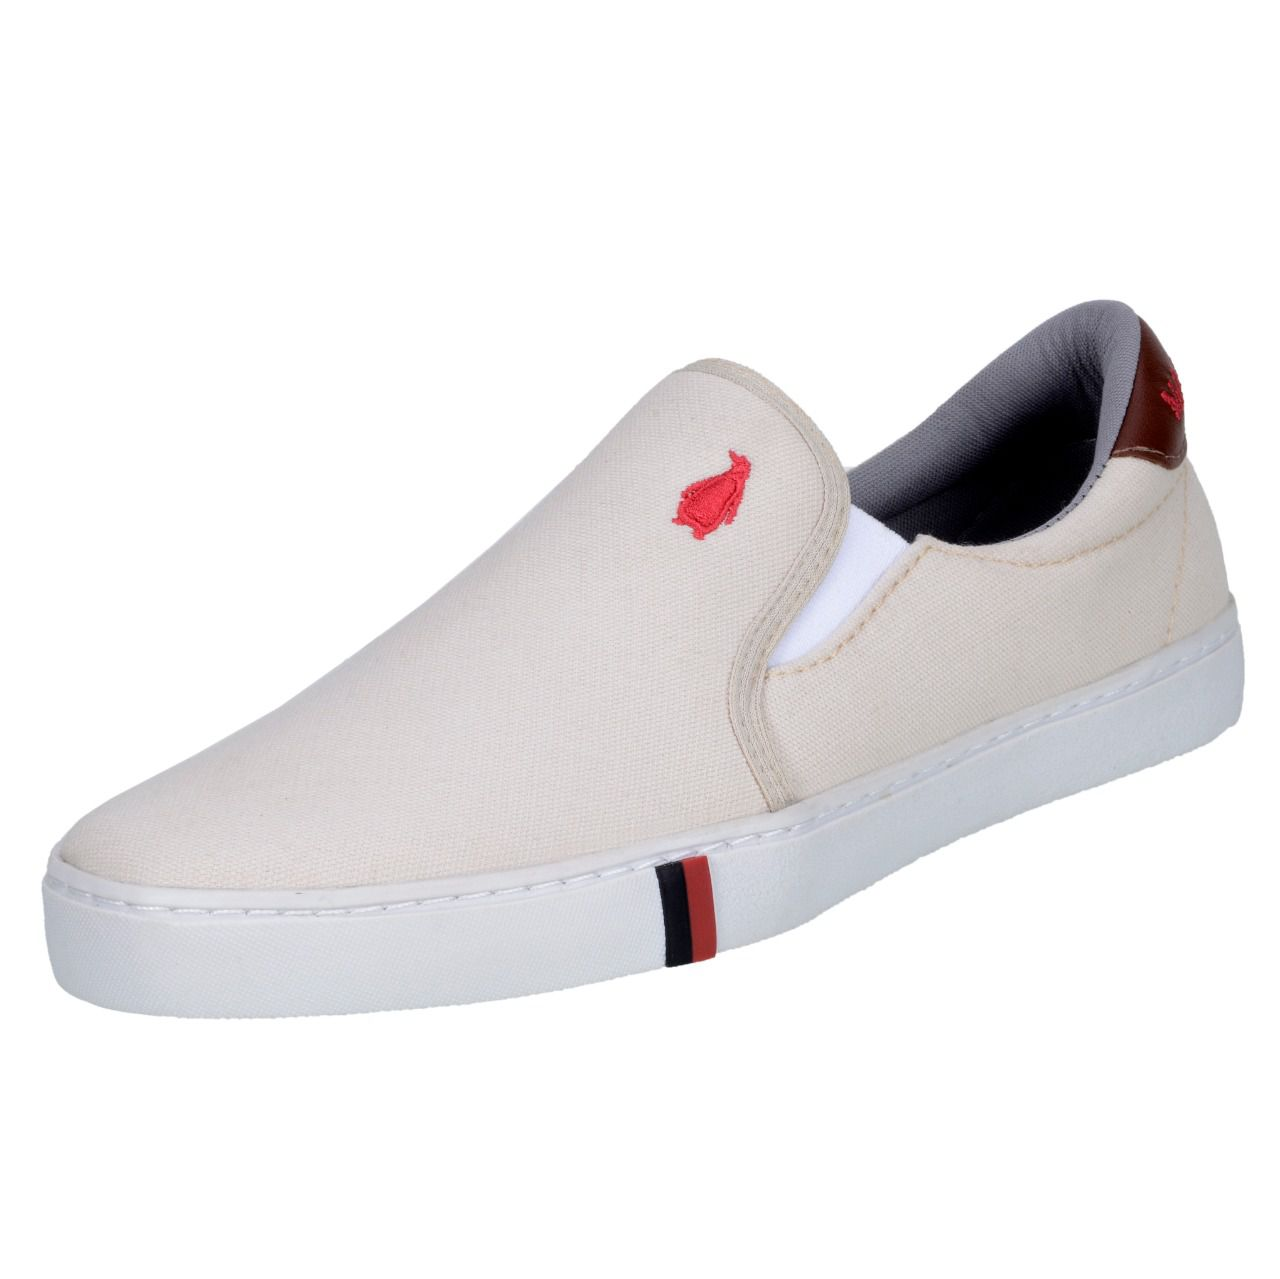 Sapatênis Casual MacShoes 1010 Bege